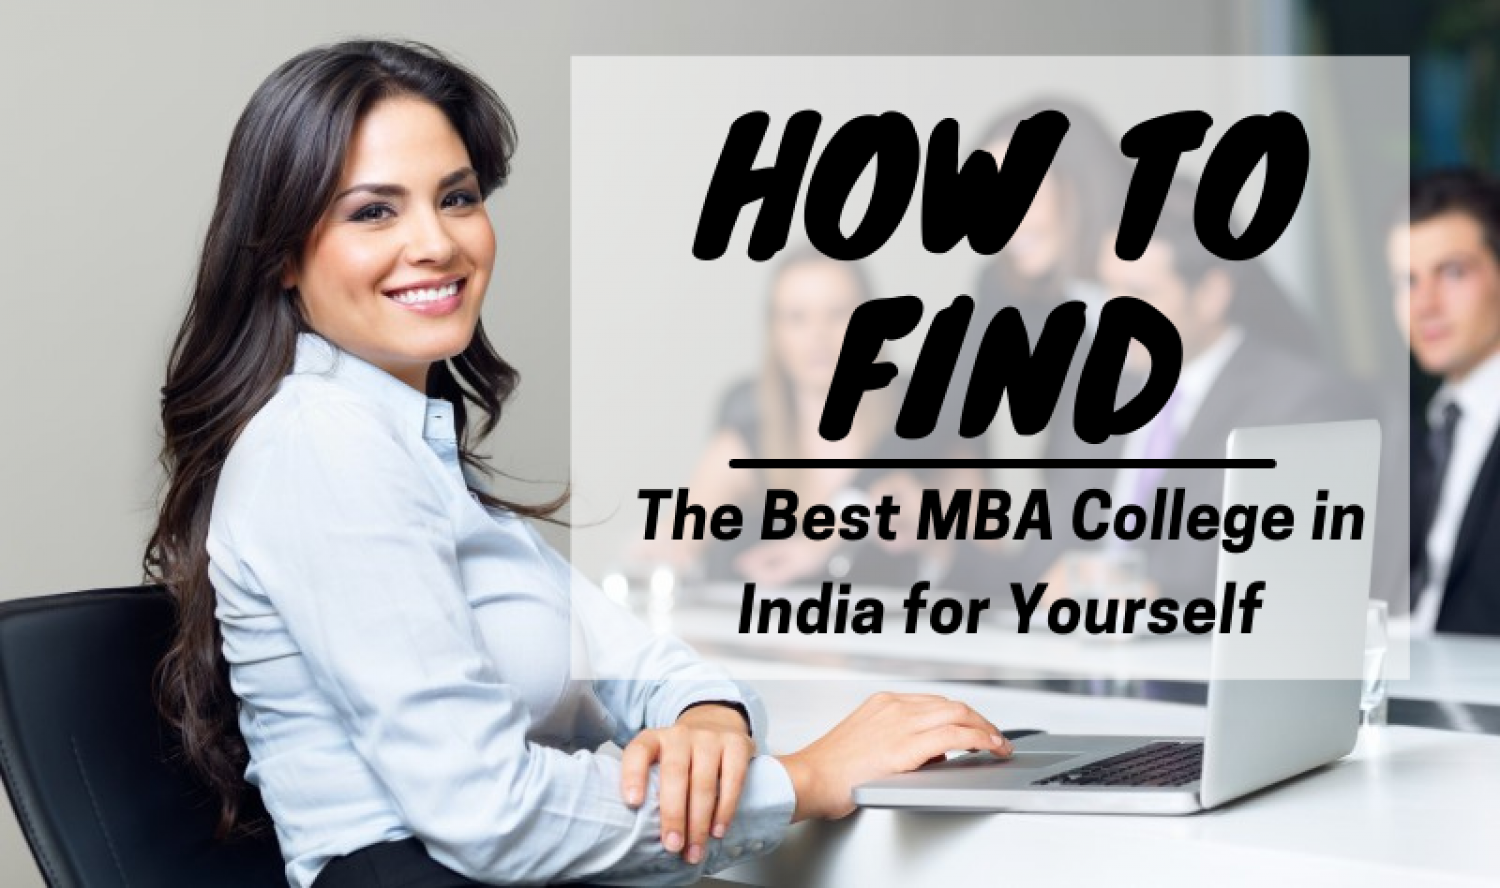 How to Find The Best MBA College in India for Yourself? Infographic